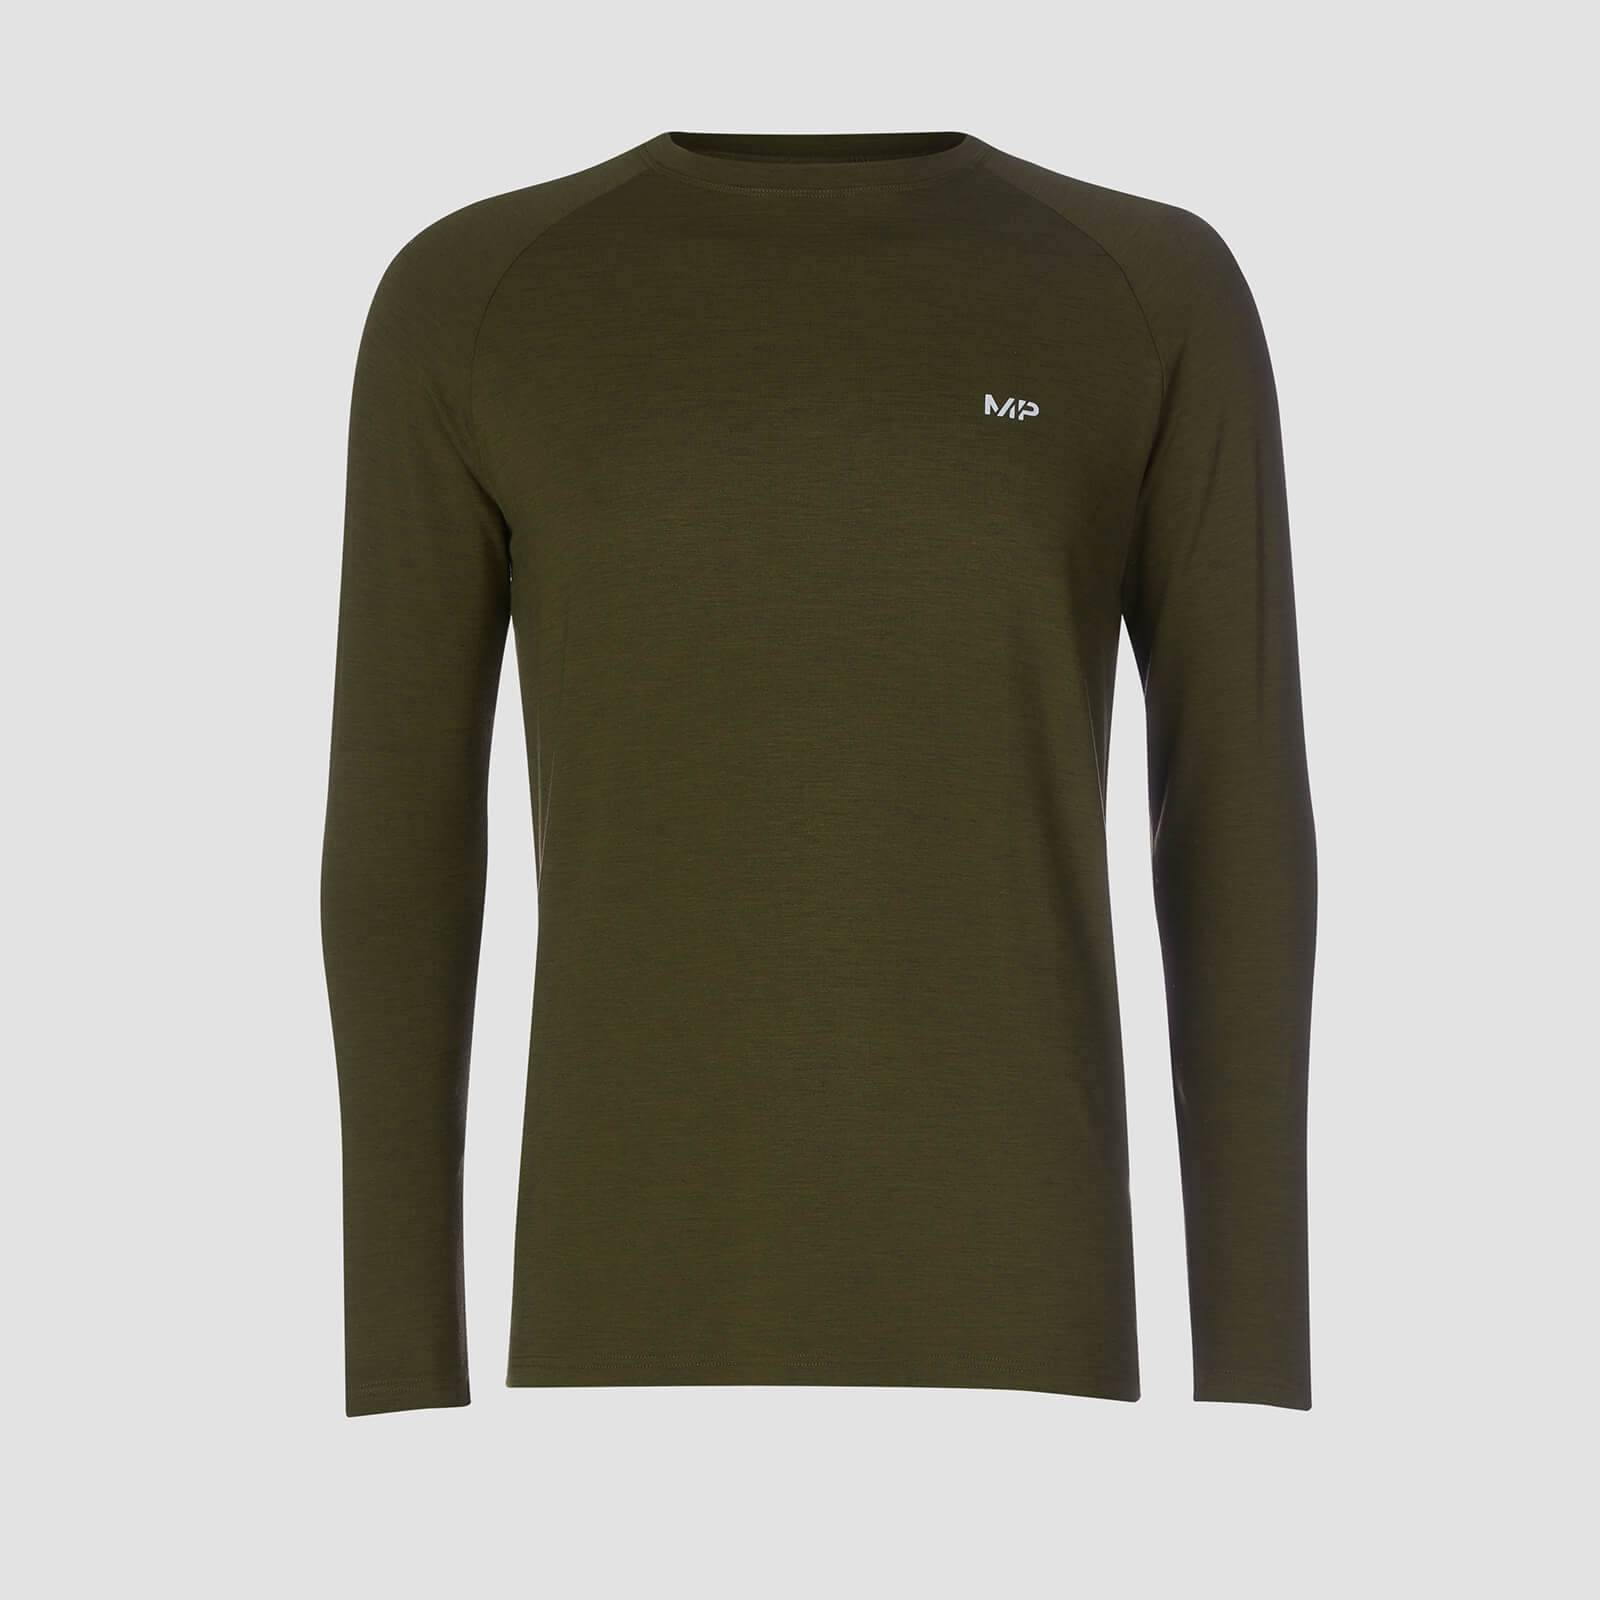 Myprotein T-shirt Performance Long Sleeve MP - Verde militare/Nero - XL